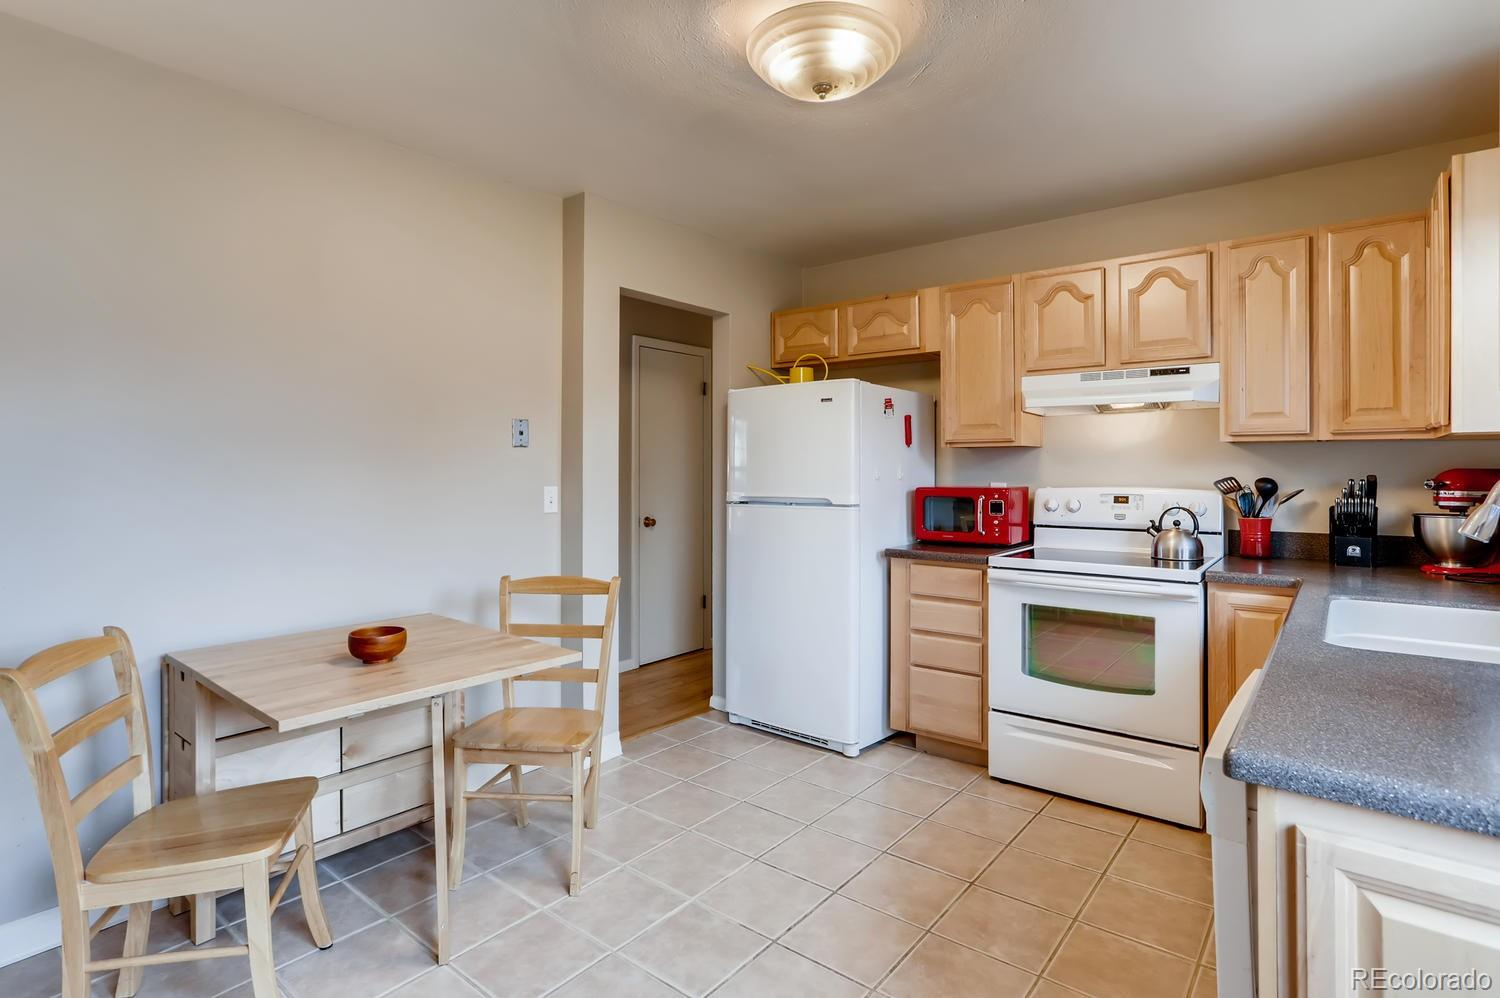 MLS# 6804031 - 7 - 10912 W 107th Place, Westminster, CO 80021